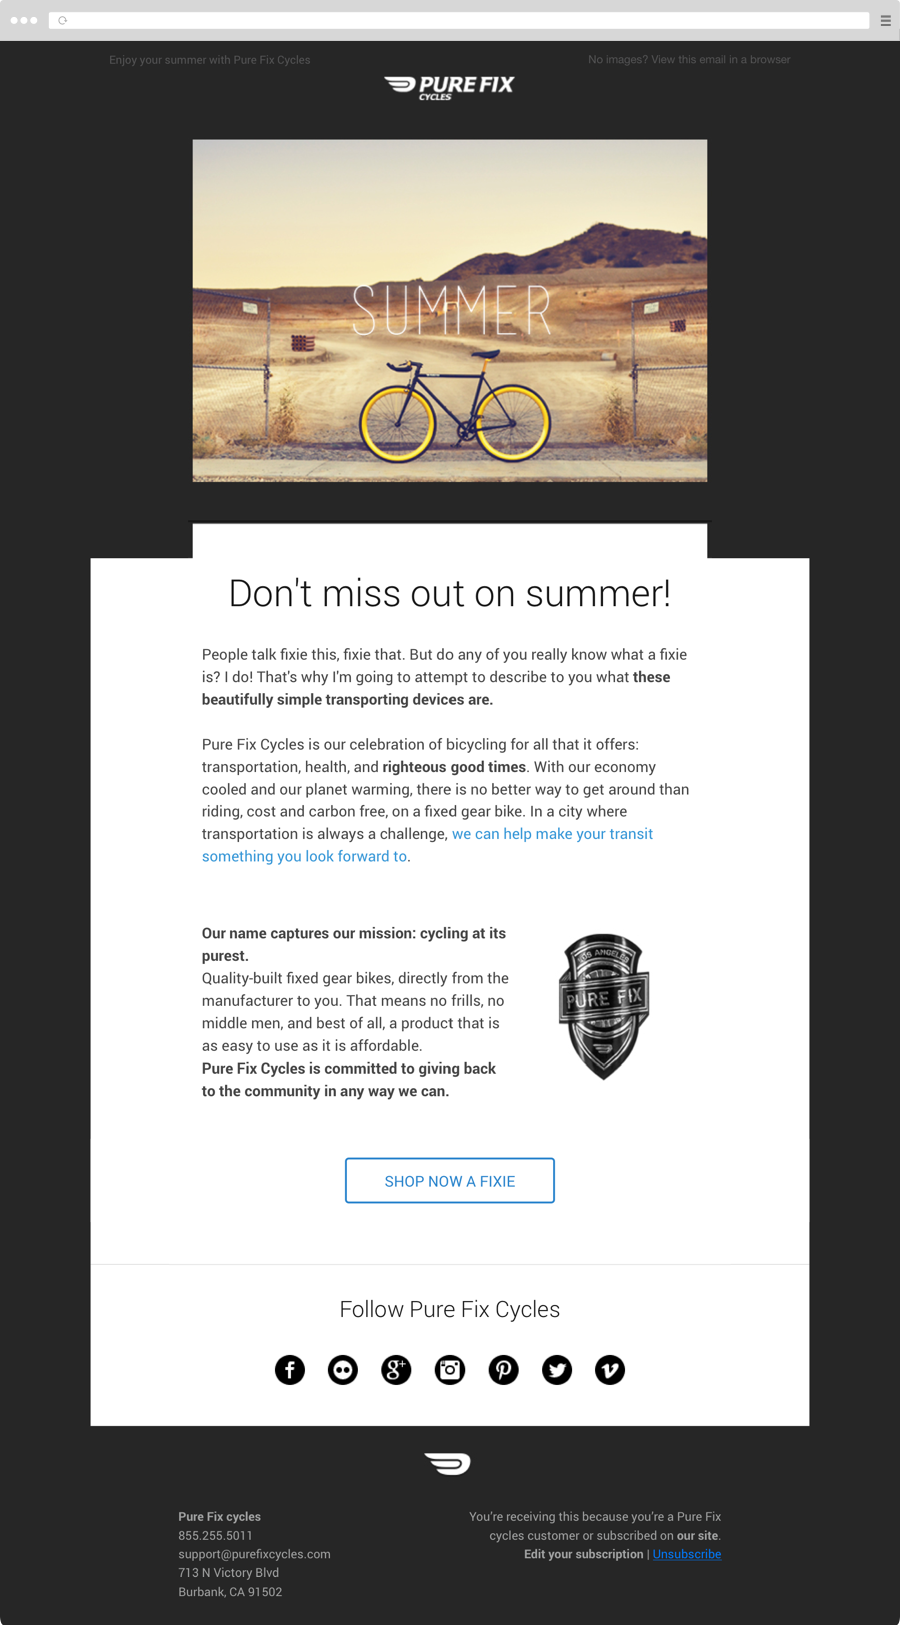 PureFixCycles-browser_window_900